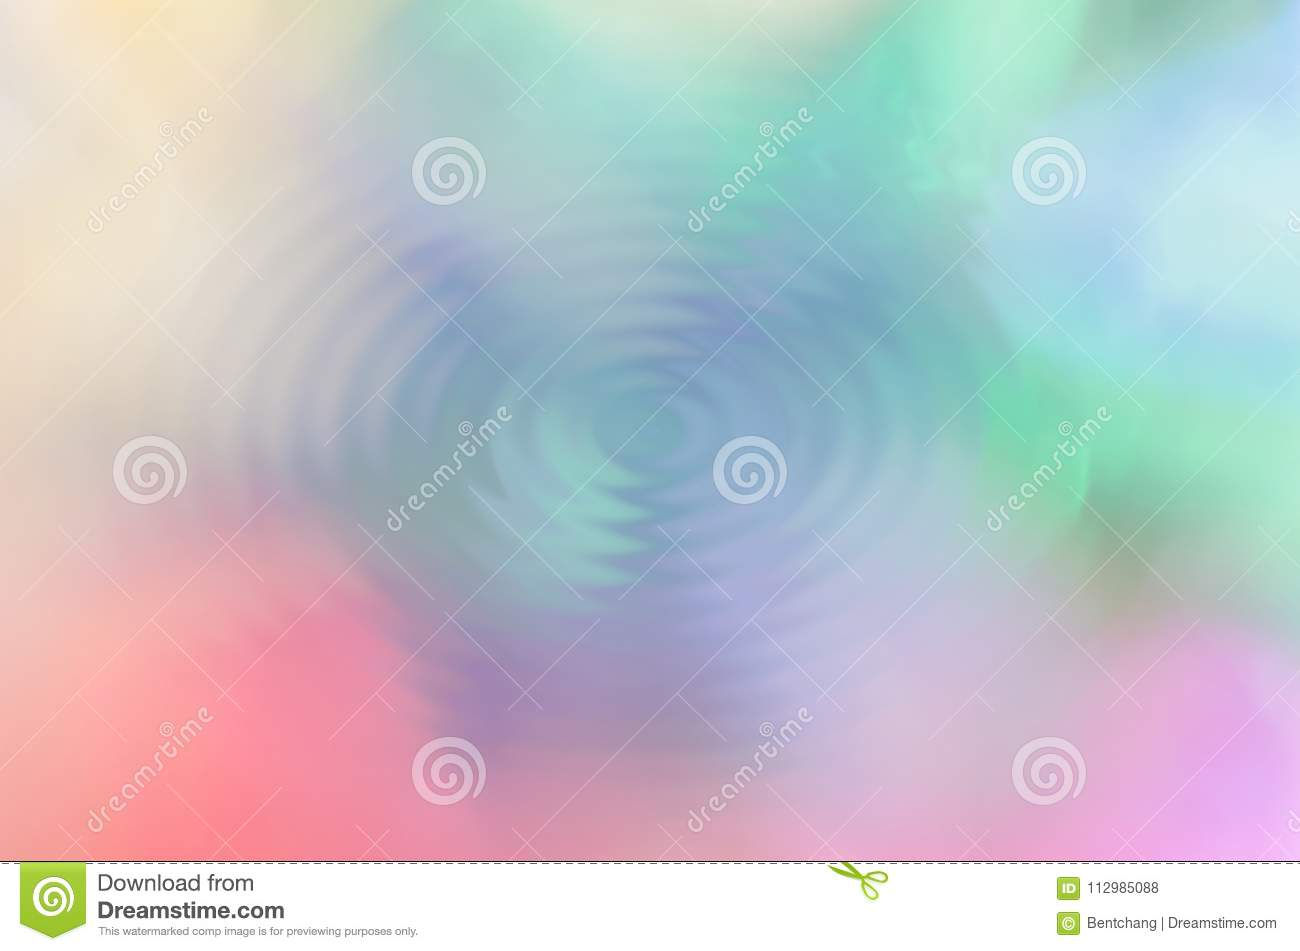 Abstract motion, for web page, wallpaper or graphic design. Blur, pattern, distort, artwork & ripple.